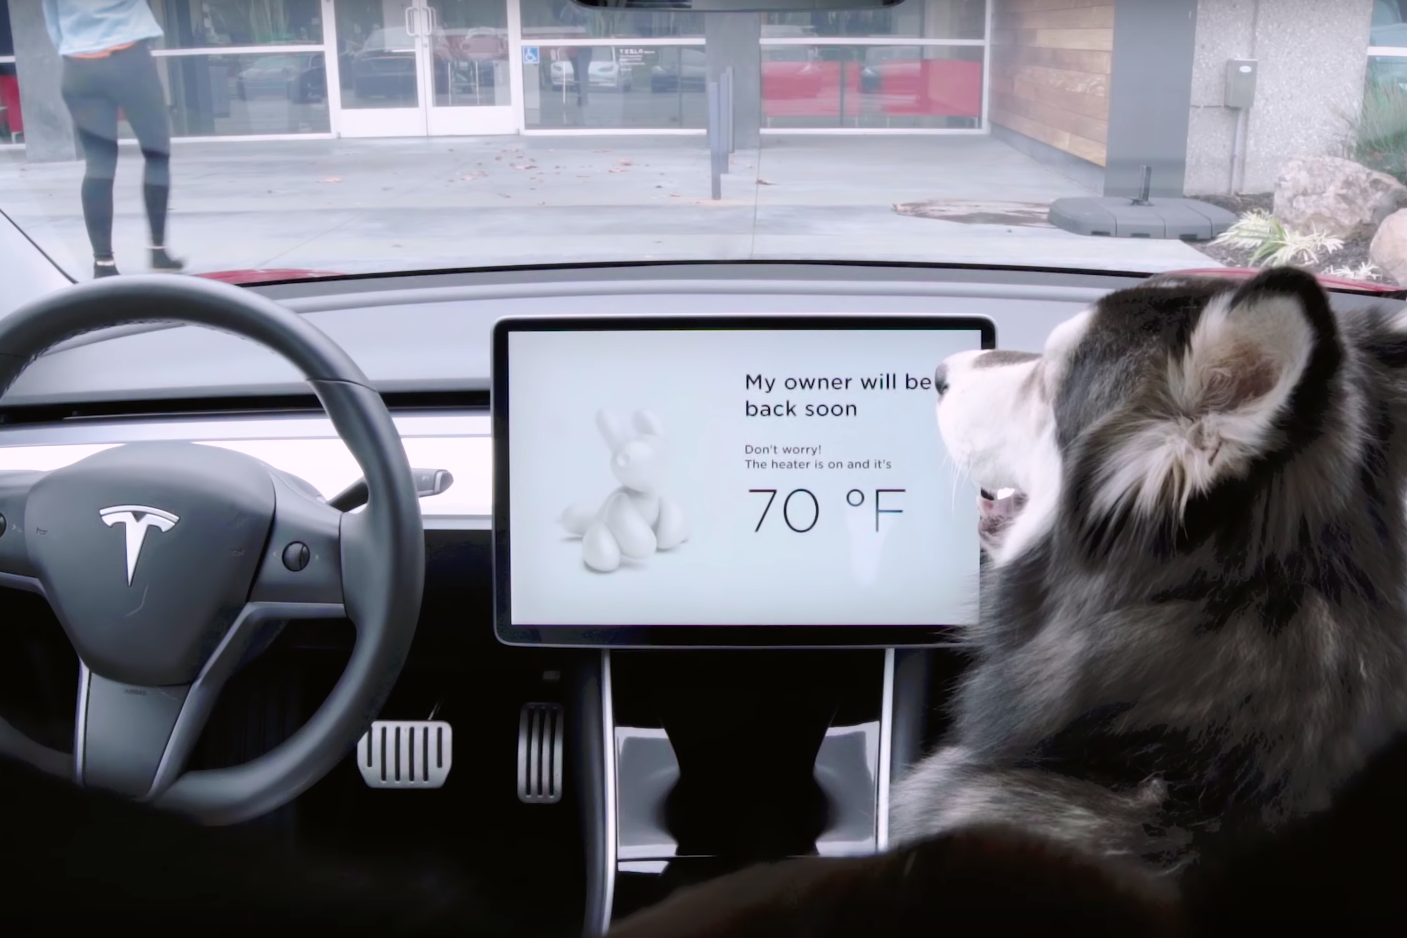 Tesla's New Modes Keep Dogs Cool, Owners' Cars Unstolen | Automobile Magazine